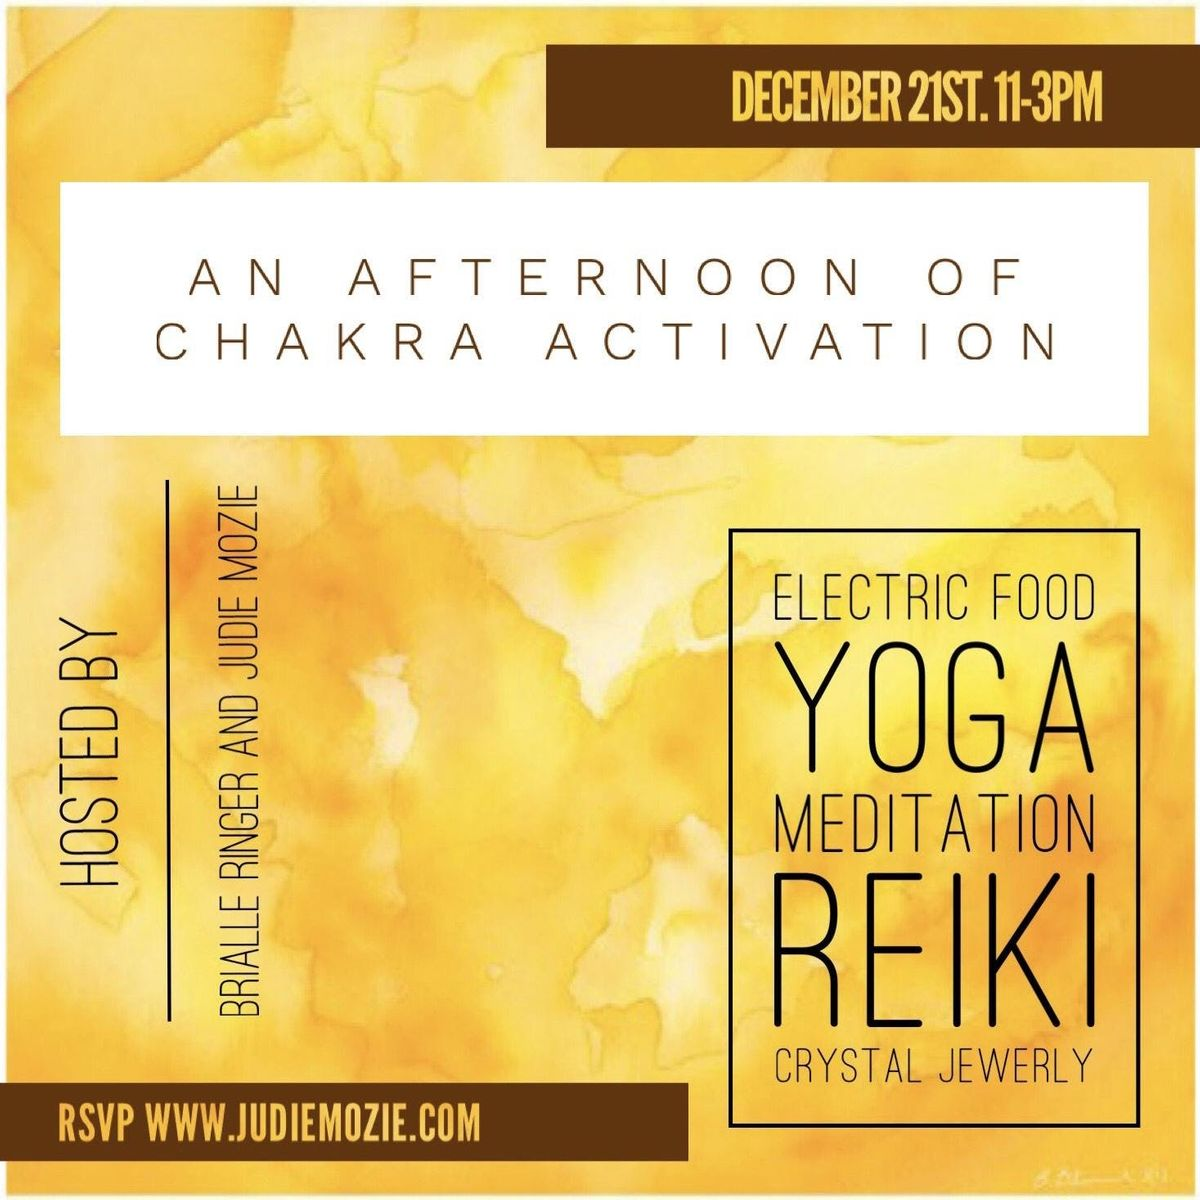 An Afternoon of Chakra Activation